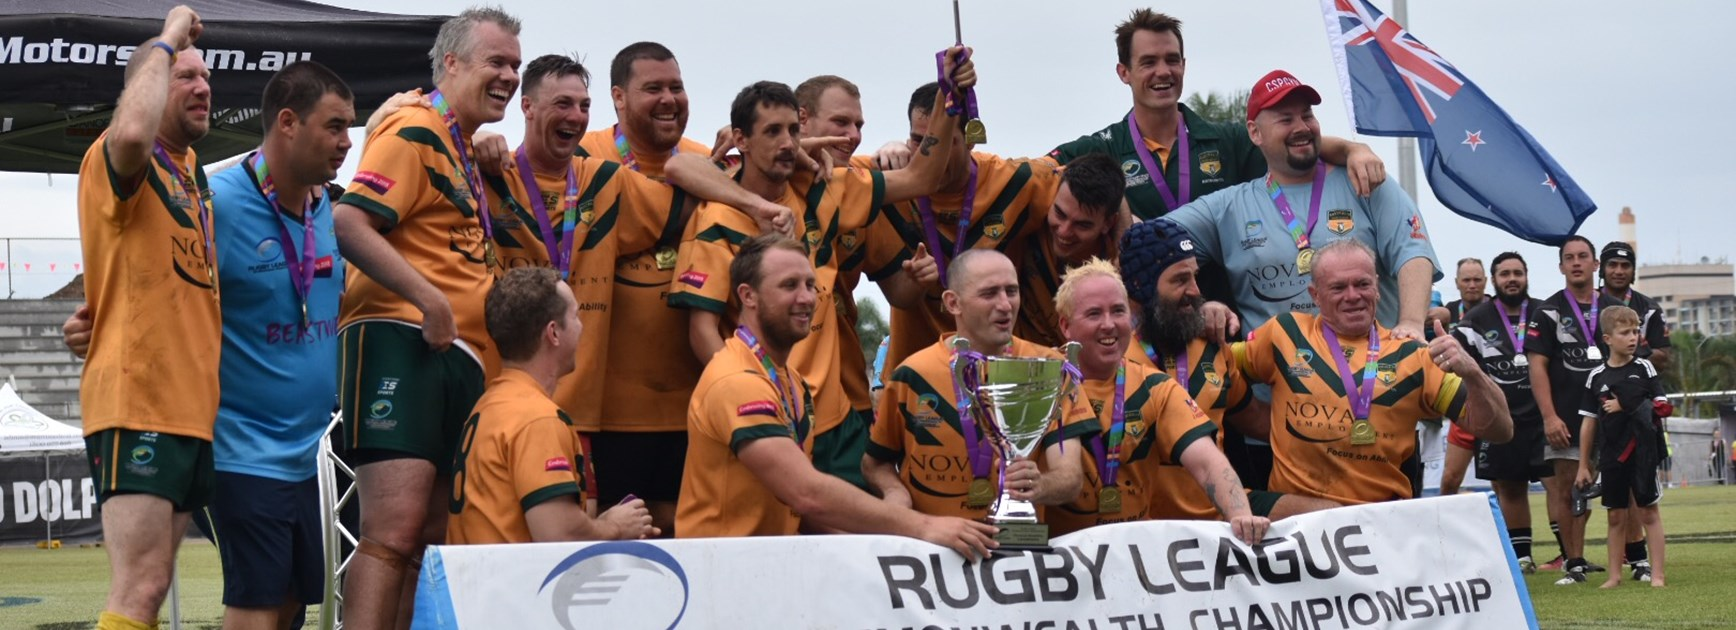 Australia wins Physical Disability Rugby League gold at Commonwealth Championships